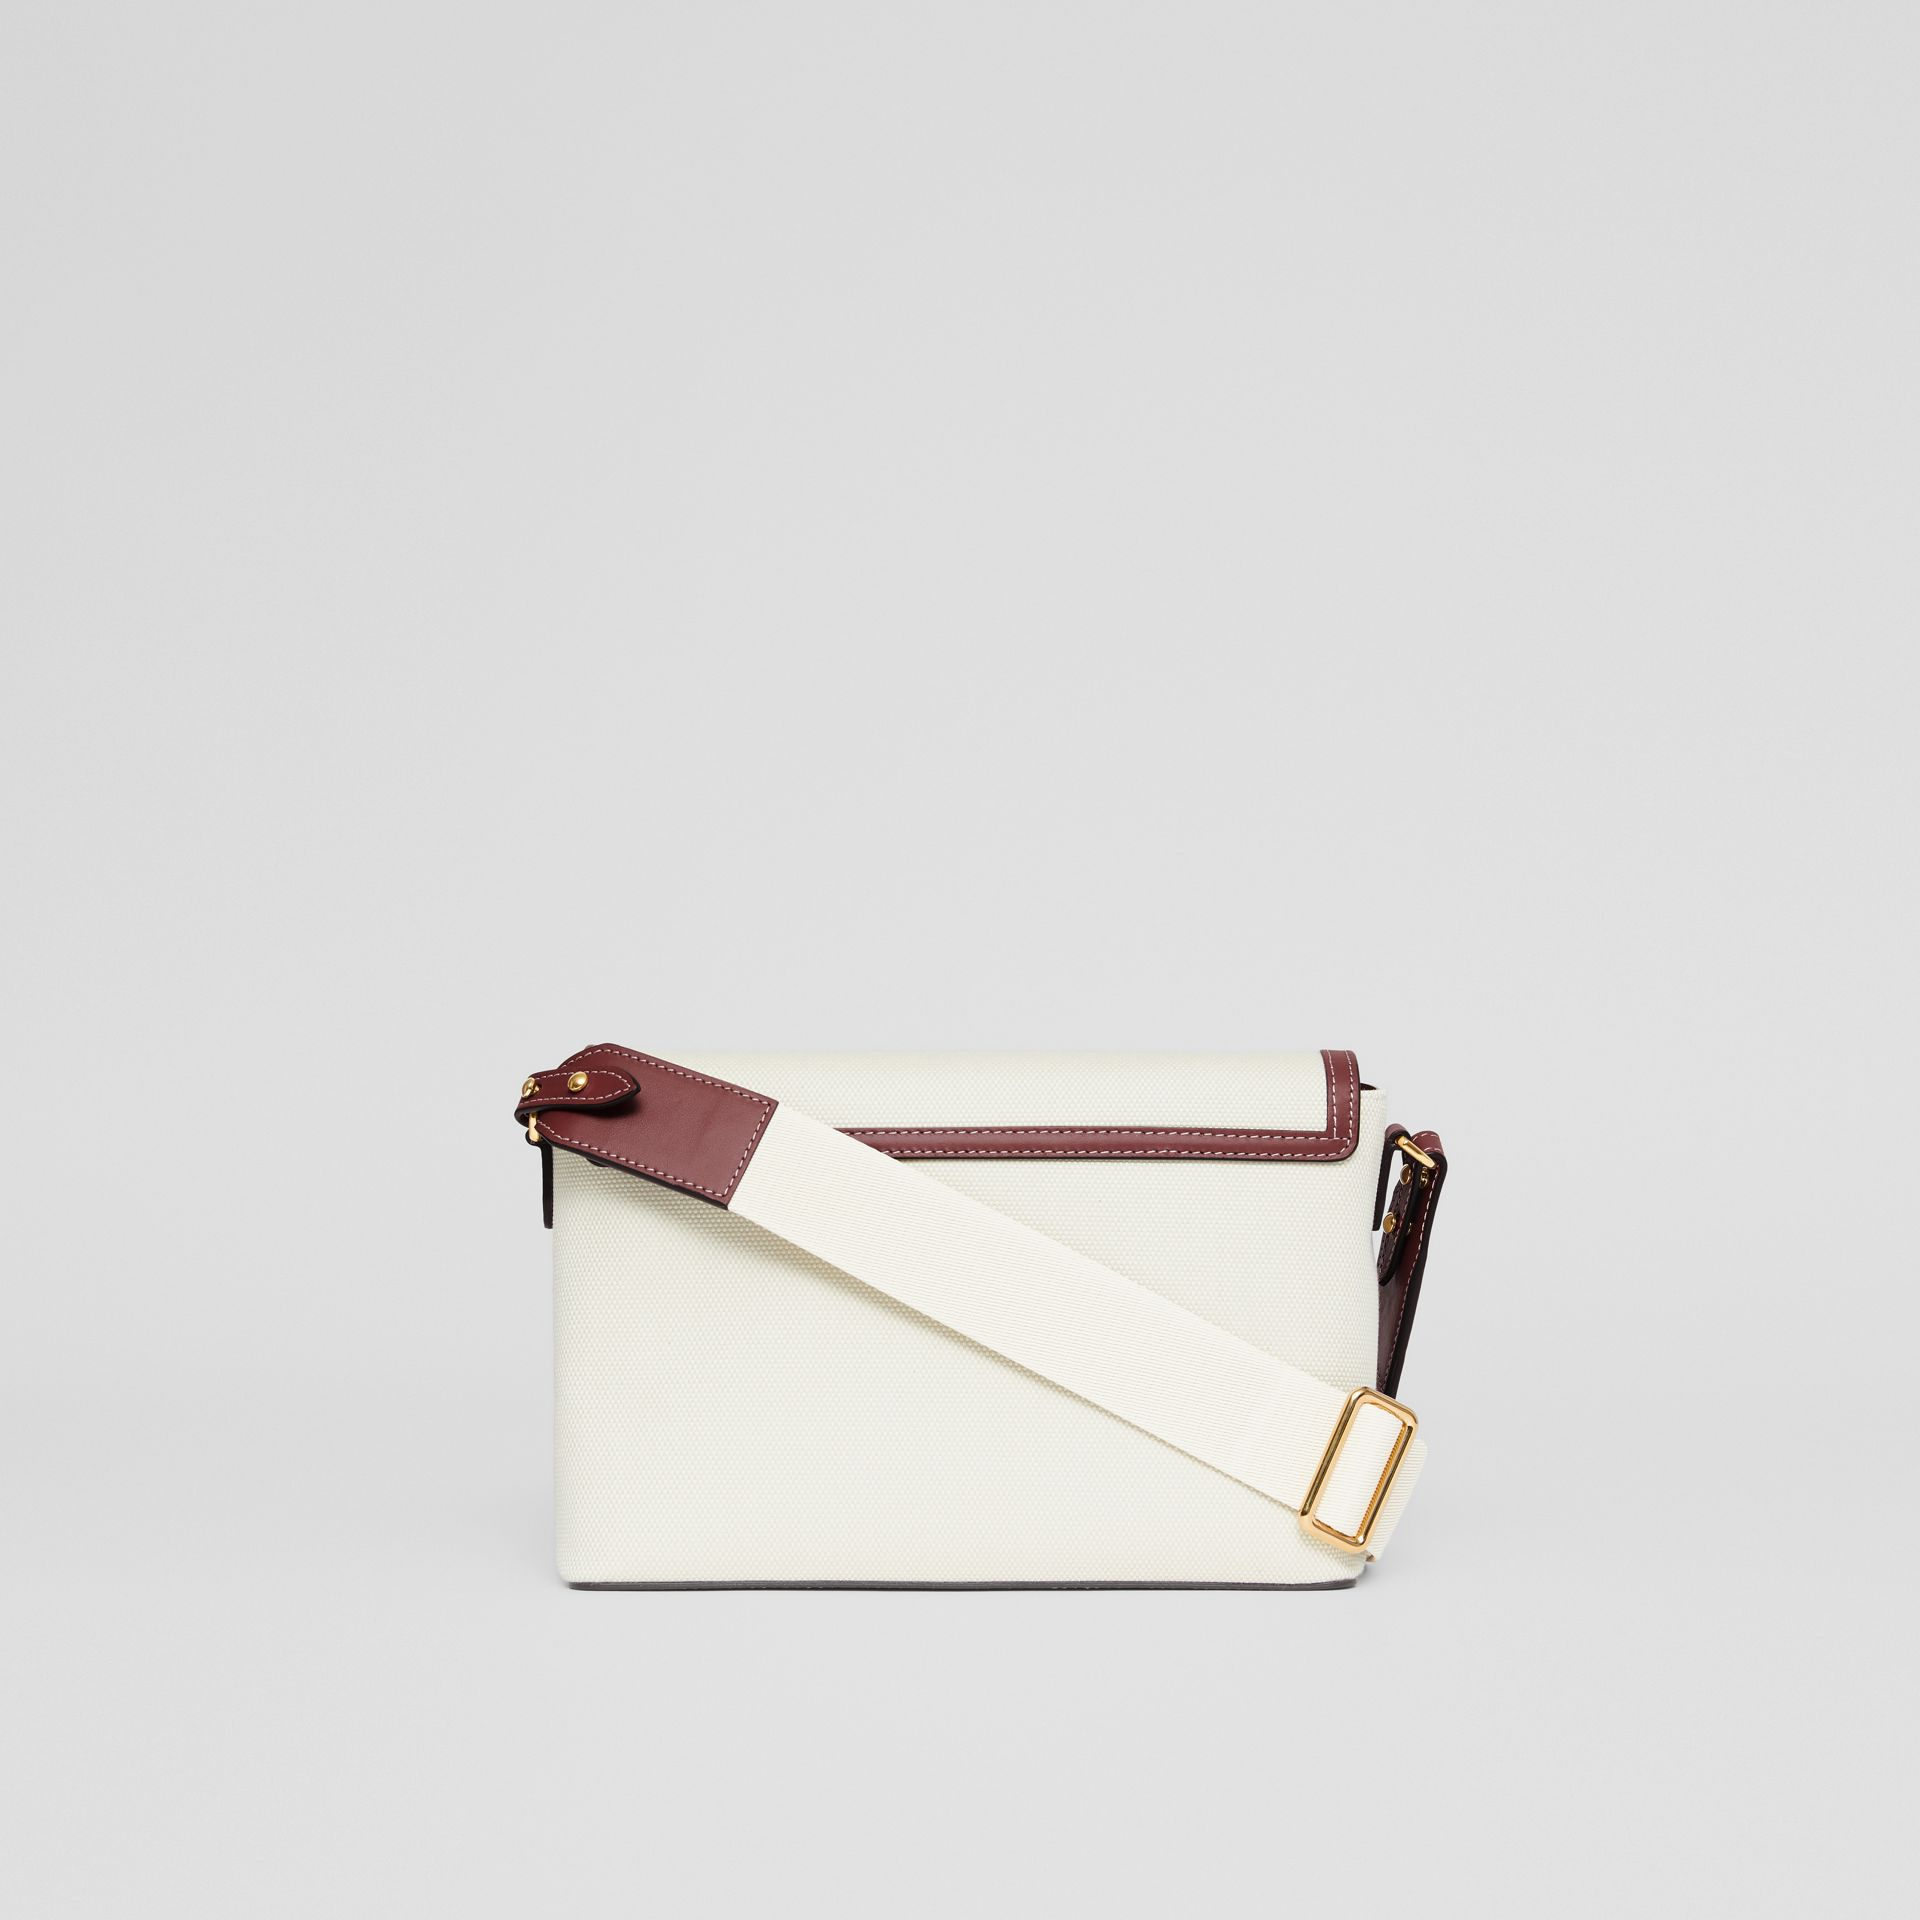 Horseferry Print Canvas Note Crossbody Bag in Natural/garnet - Women | Burberry Canada - gallery image 7